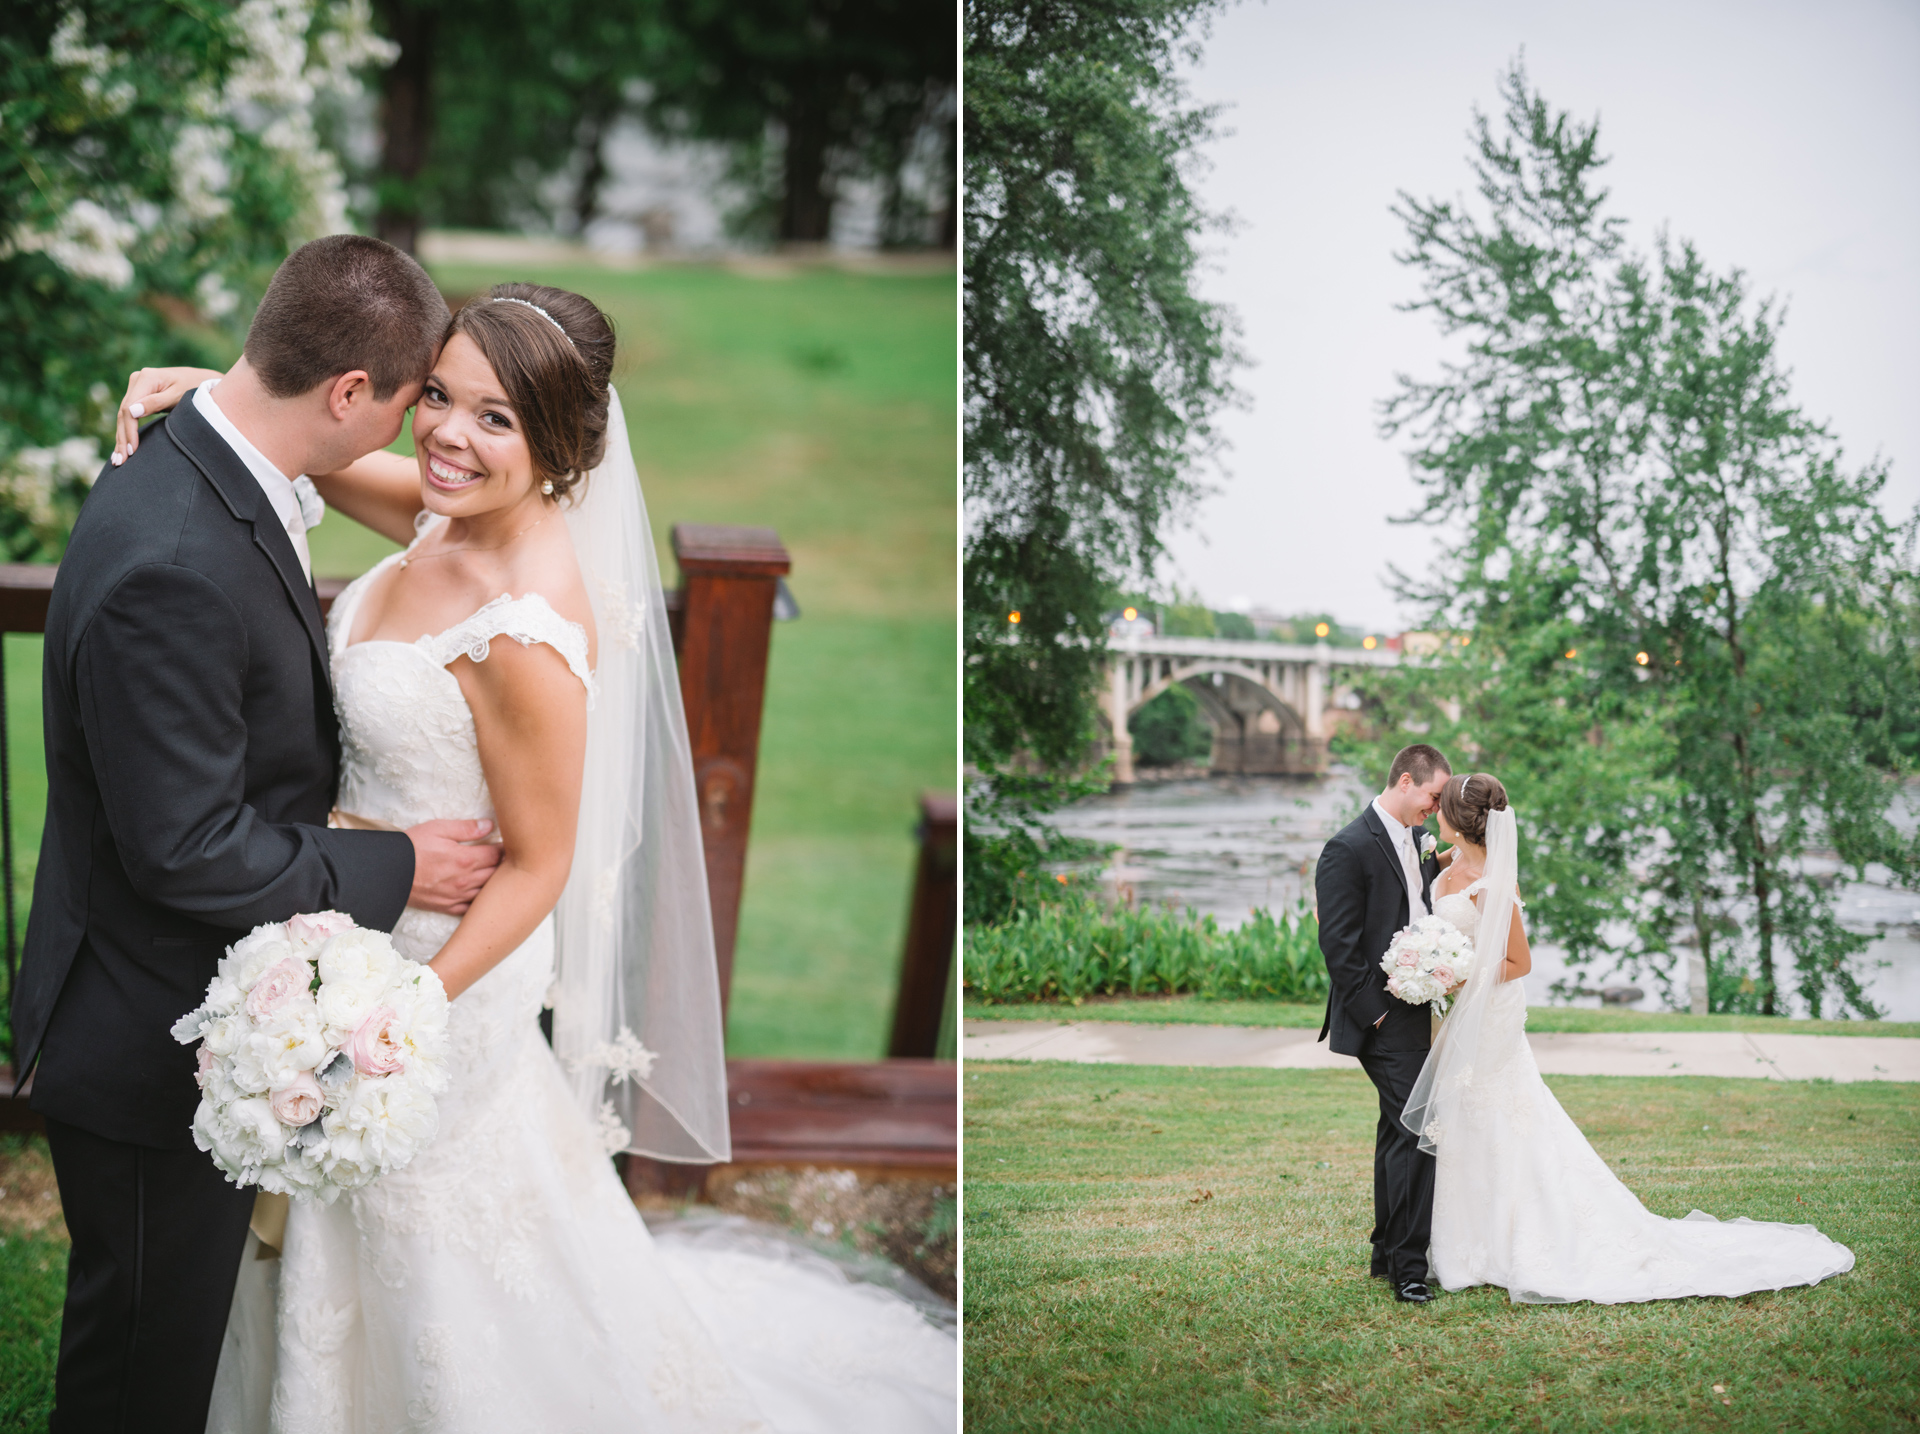 erin-brad-wedding-stone-river-columbia-south-carolina-wedding